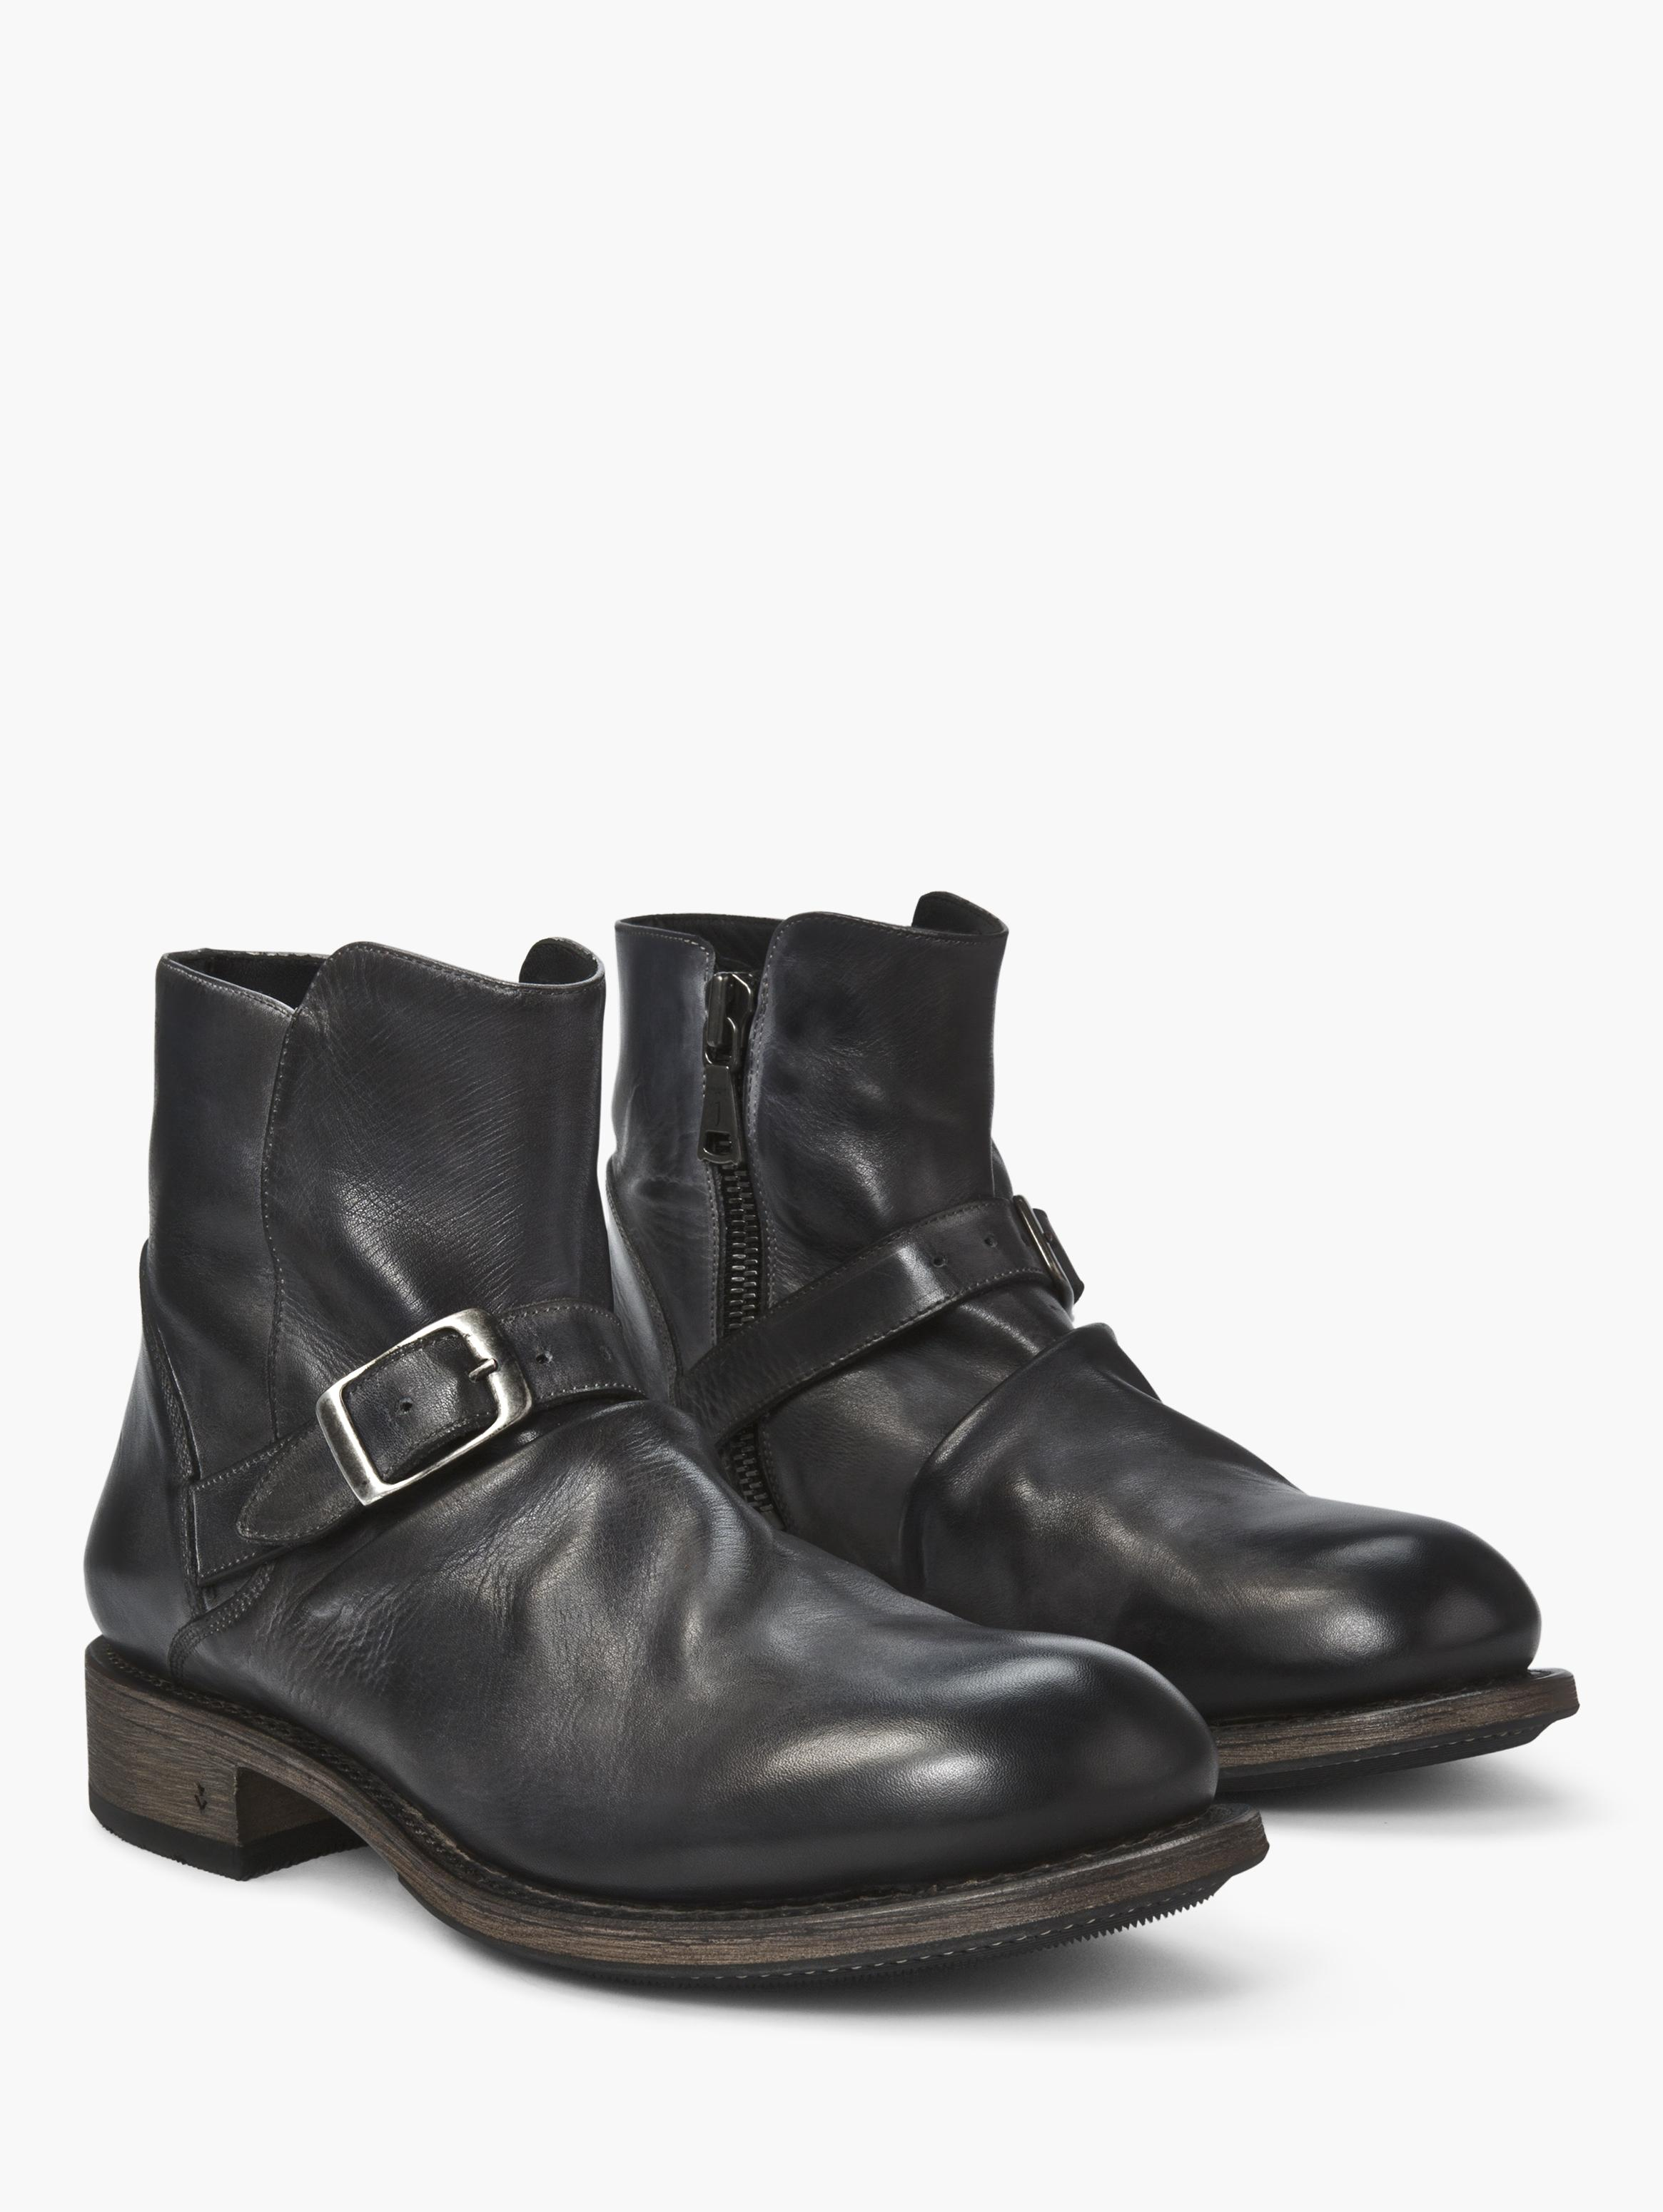 Vintage Jodphor Boot